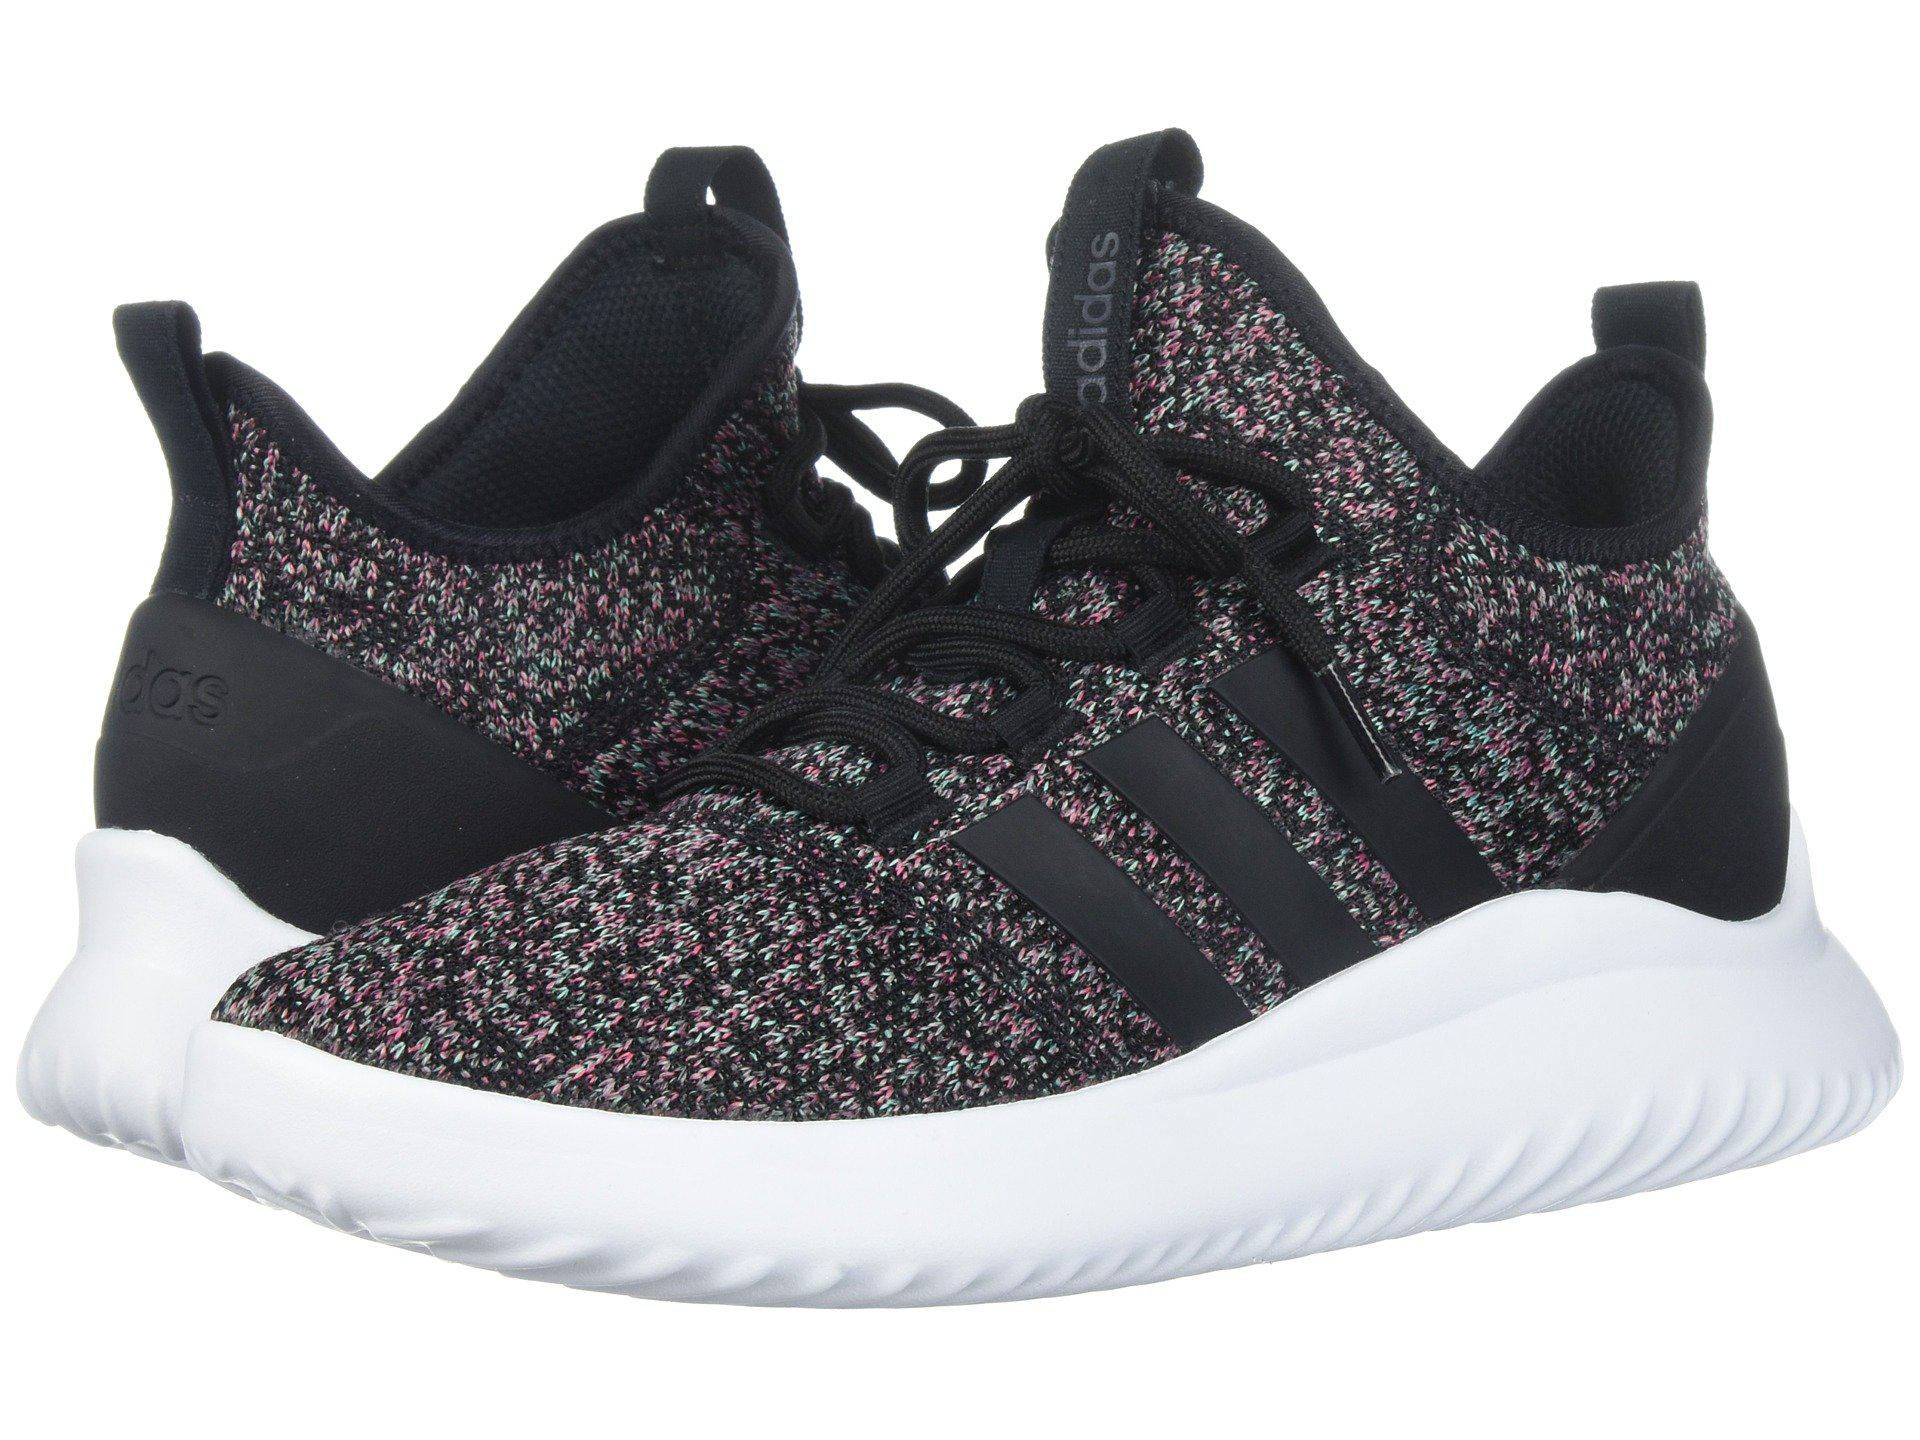 adidas NEO Cloudfoam Ultimate ... Basketball Men's Sneakers NjAyR7yl4